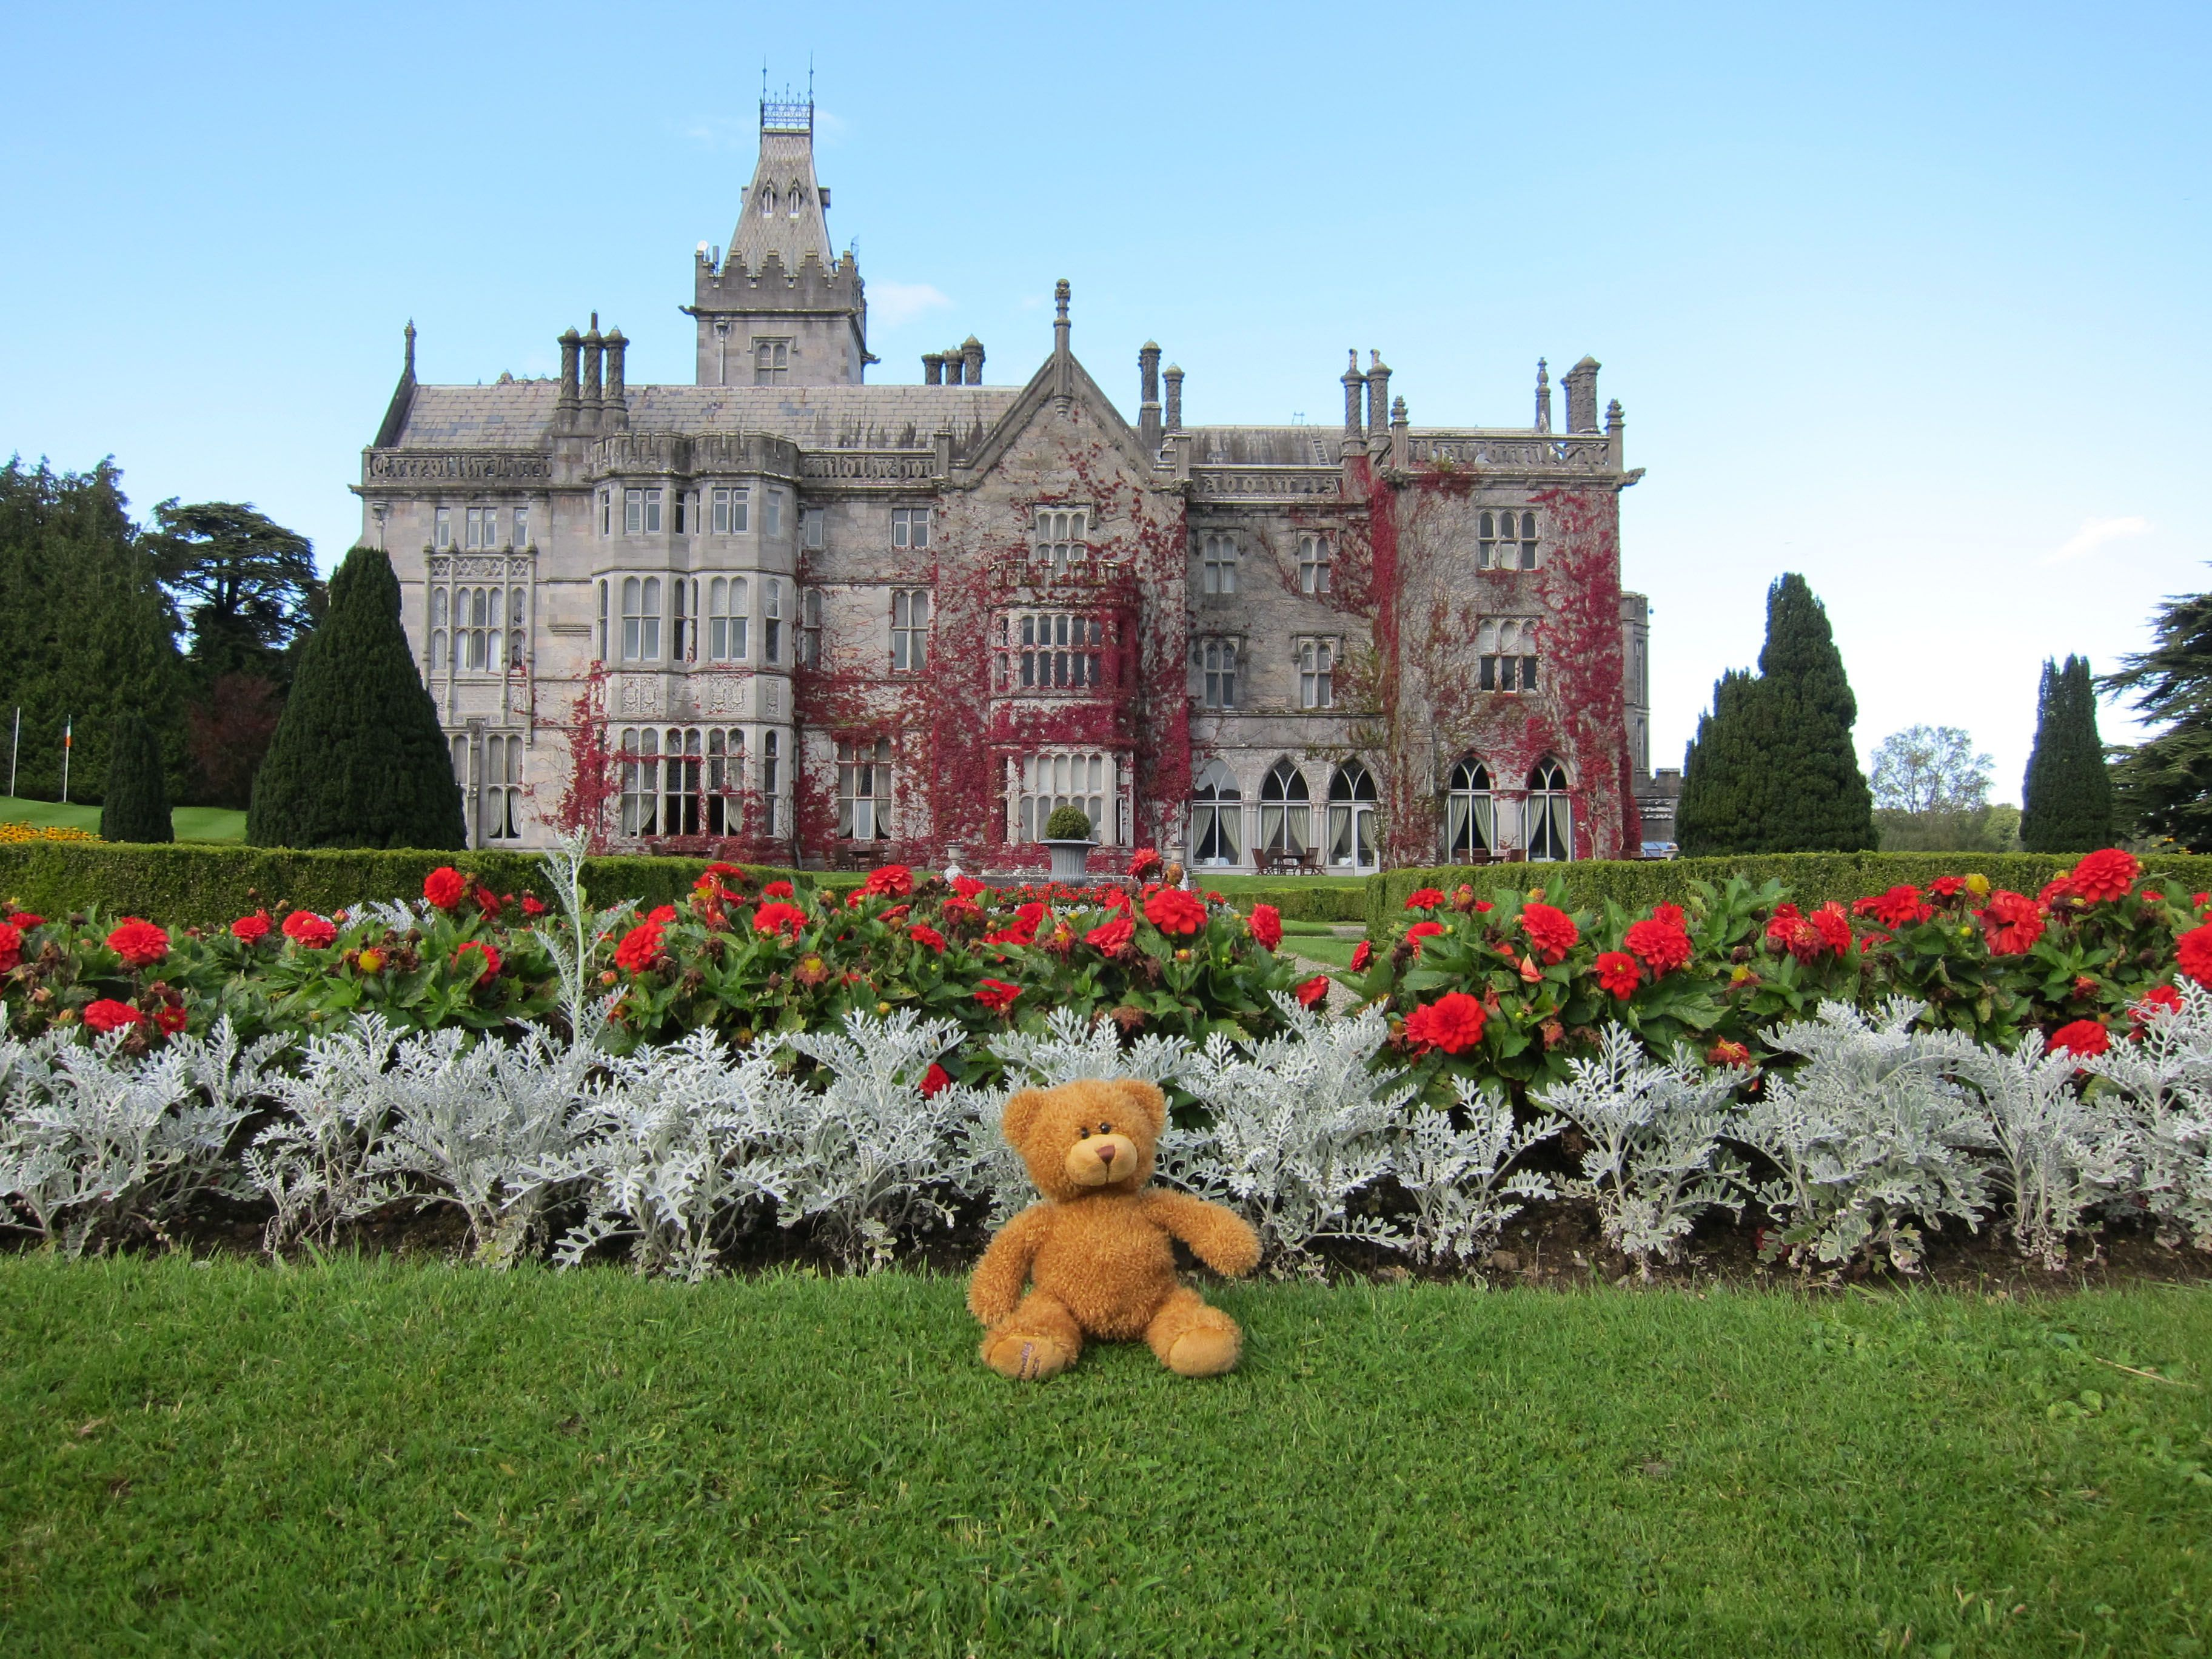 I Had A Great Time In Ireland You Think This Place Is For Sale Follow My Adventures Www Facebook Co Time In Ireland Affordable Storage Built In Storage